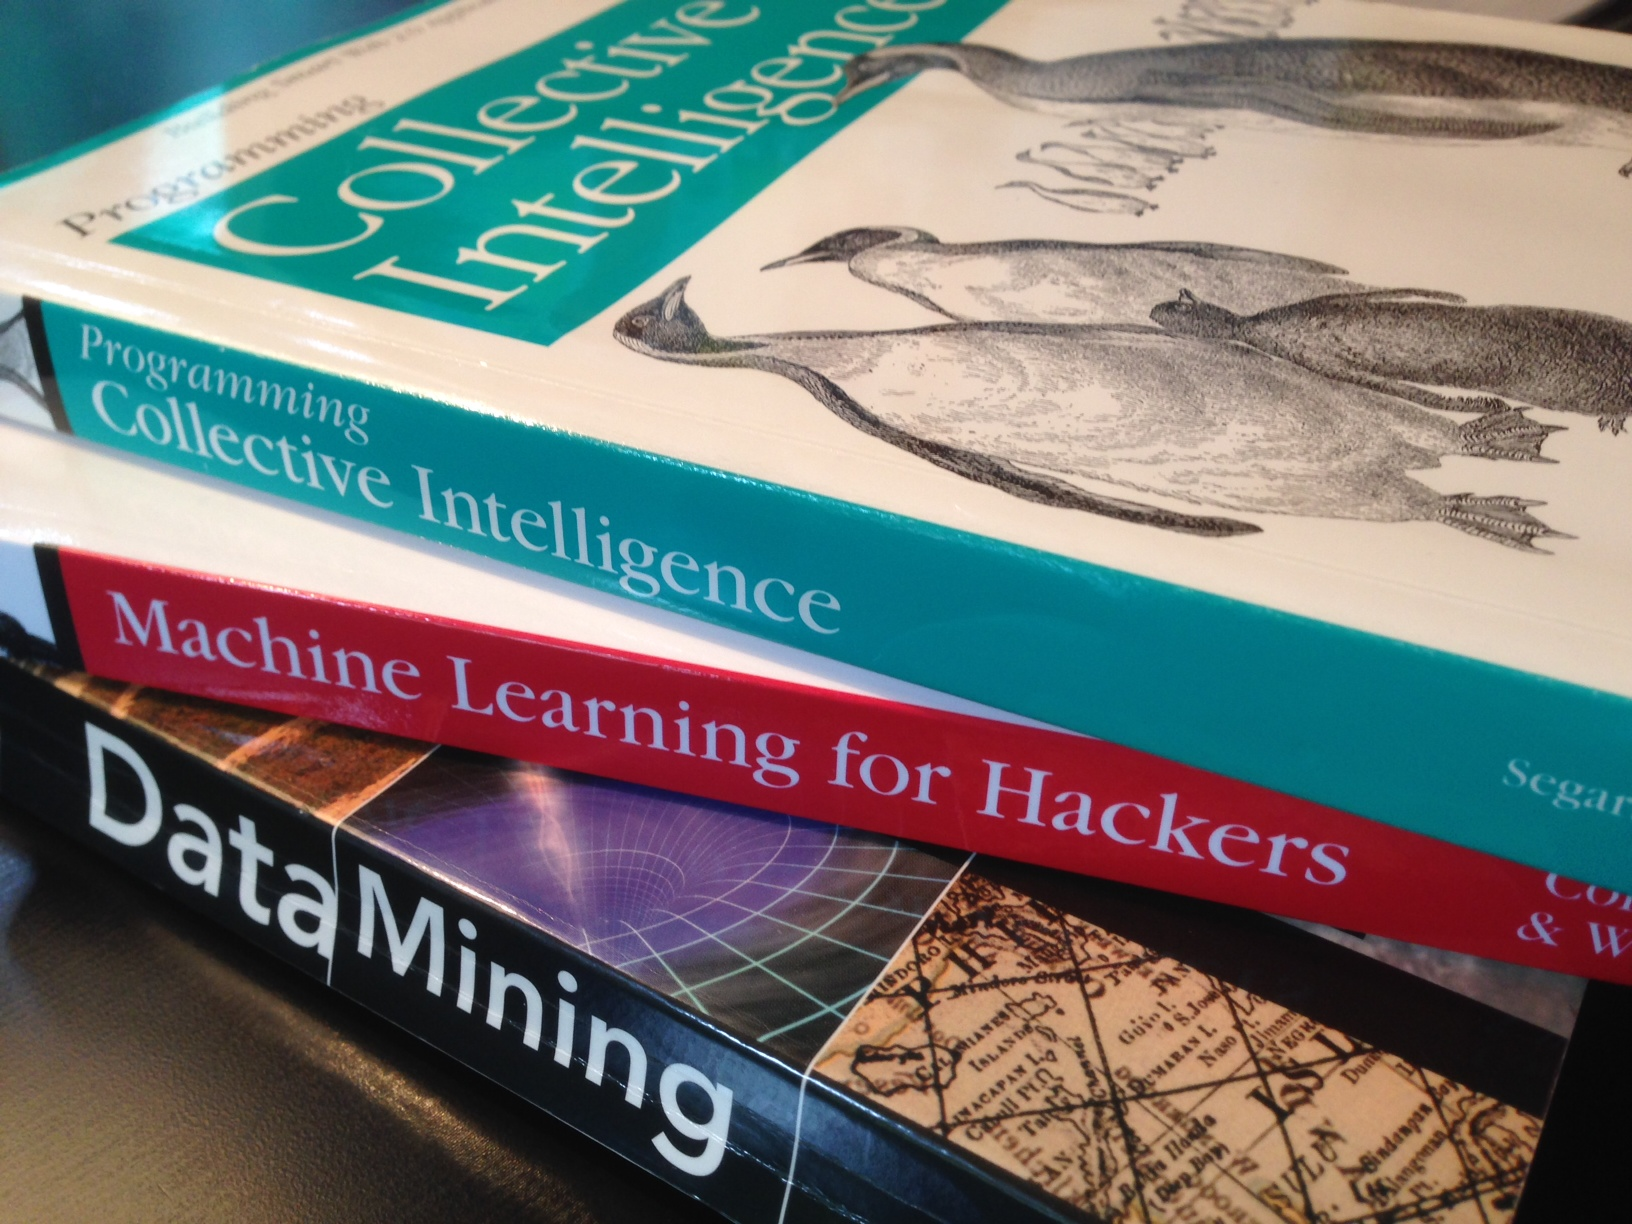 Springer releases 65 Machine Learning and Data Science books for free